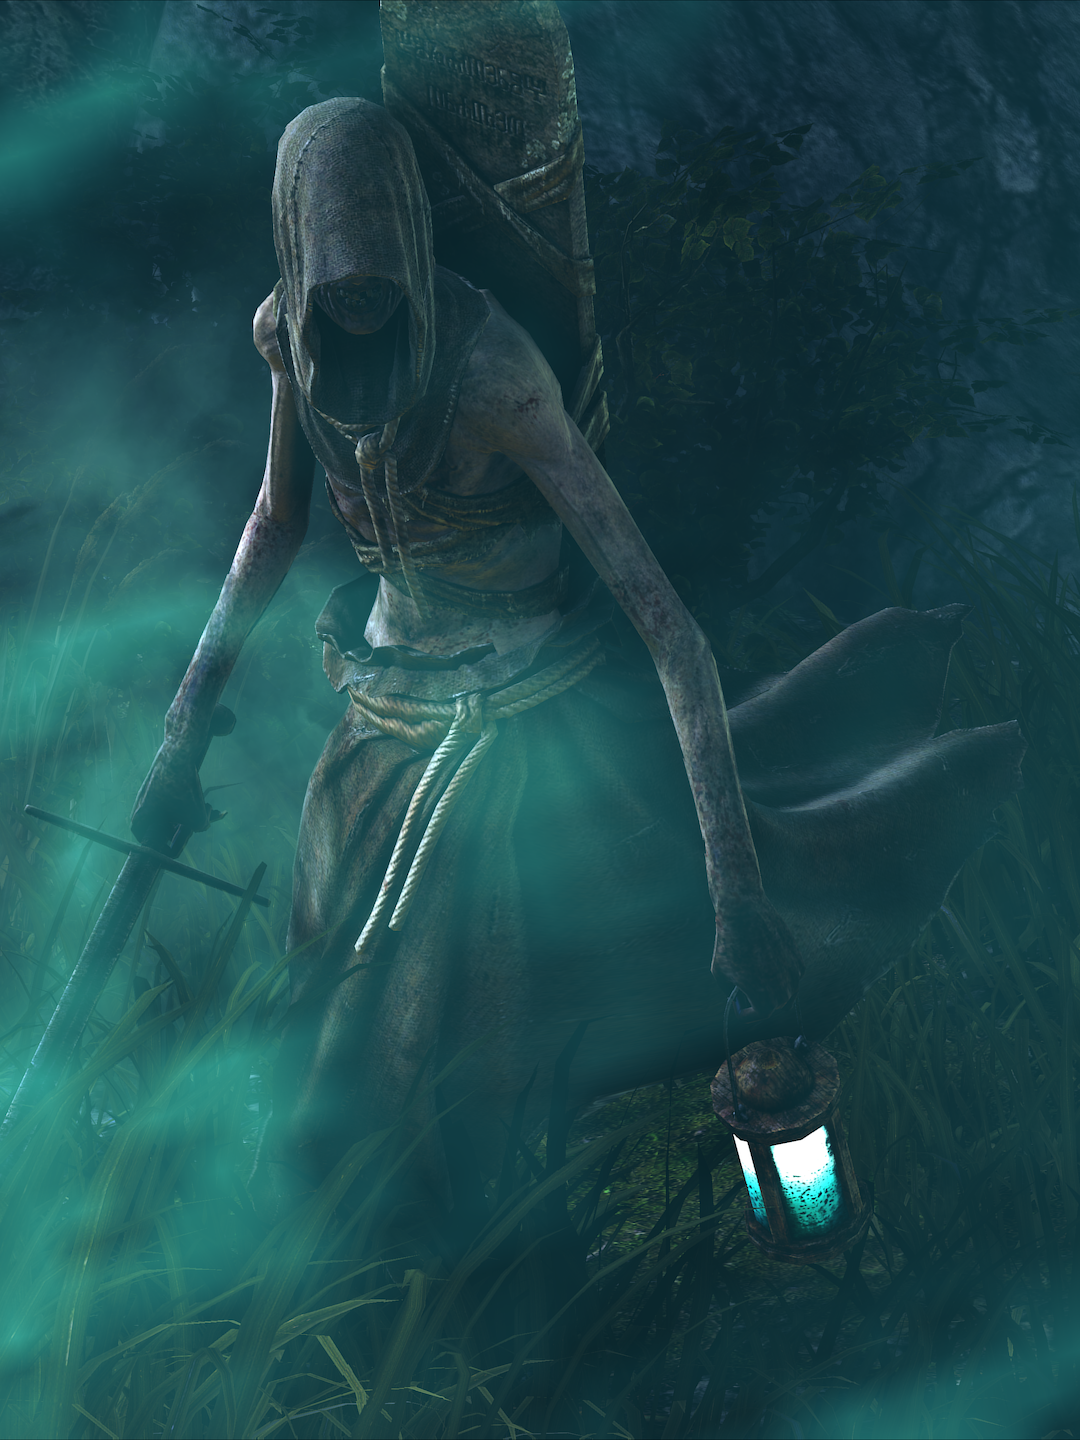 nocturne.png - Witcher 2: Assassins of Kings, the